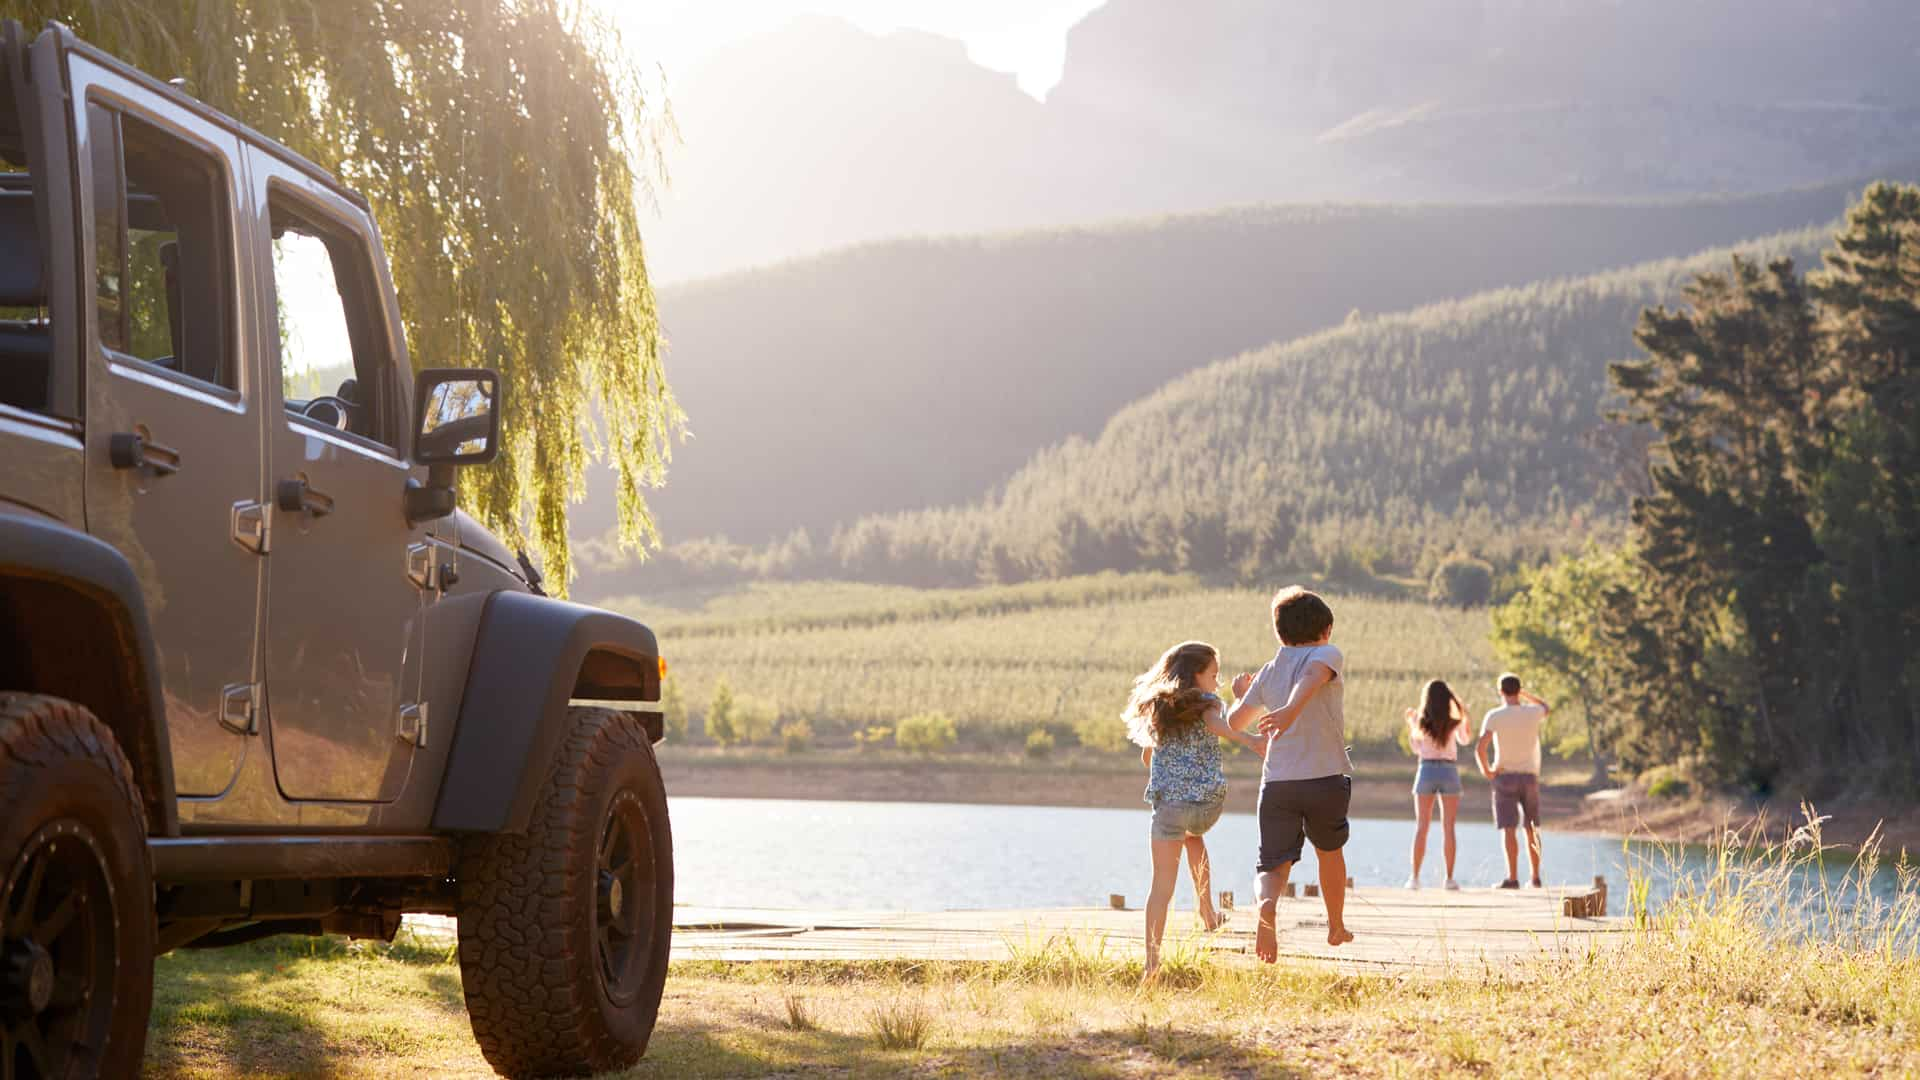 Happy family on road trip reaching lake in the countryside with mountains in the background